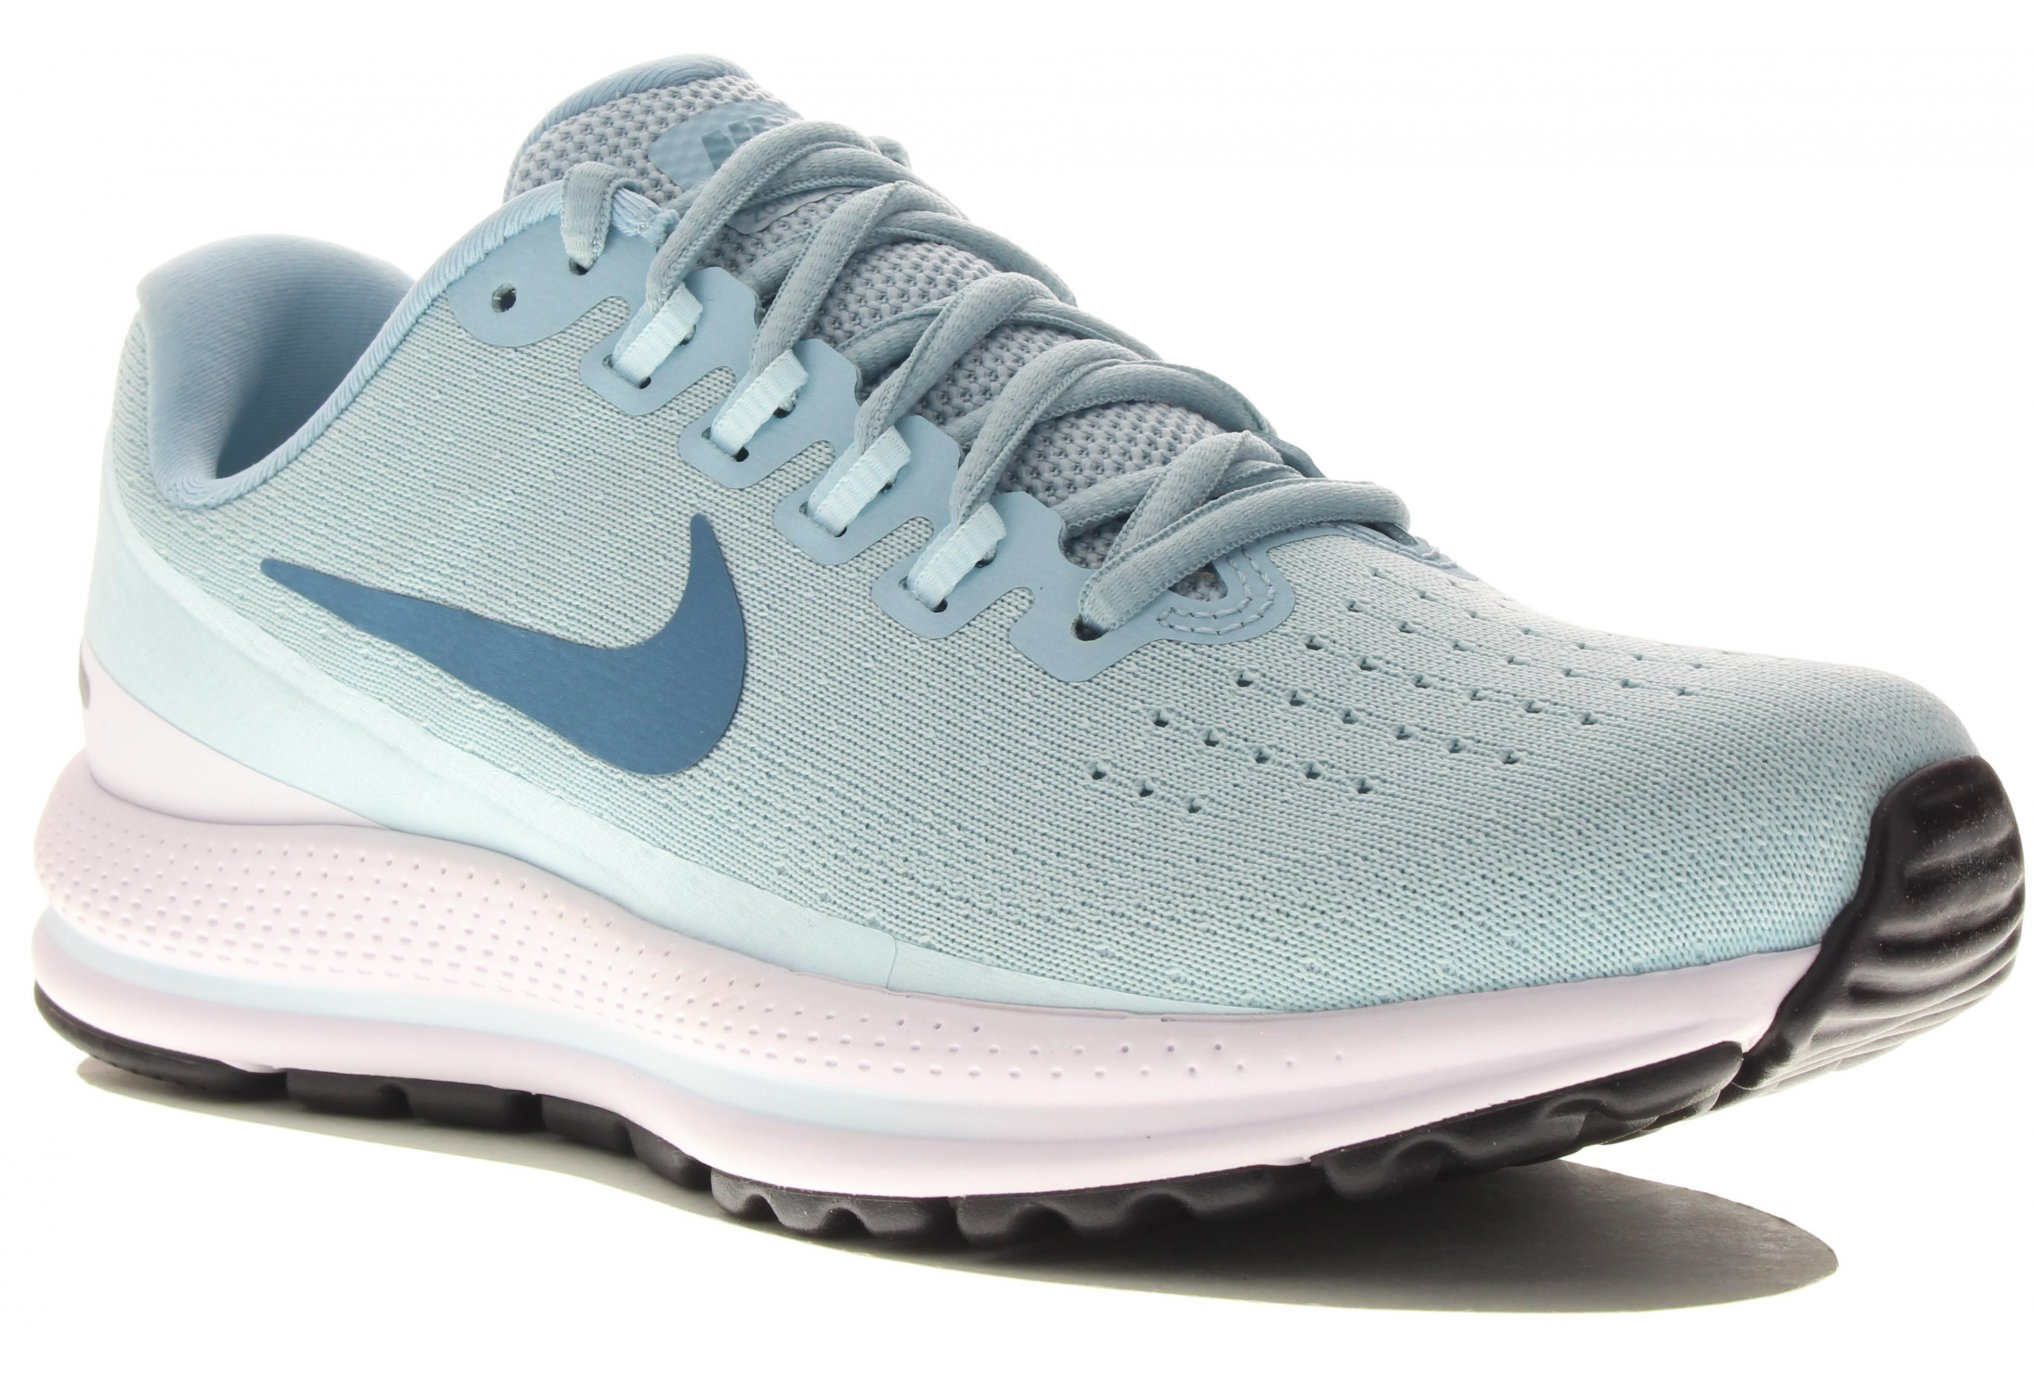 on sale b03a1 ae96d Nike Air Zoom Vomero 13 W Chaussures running femme